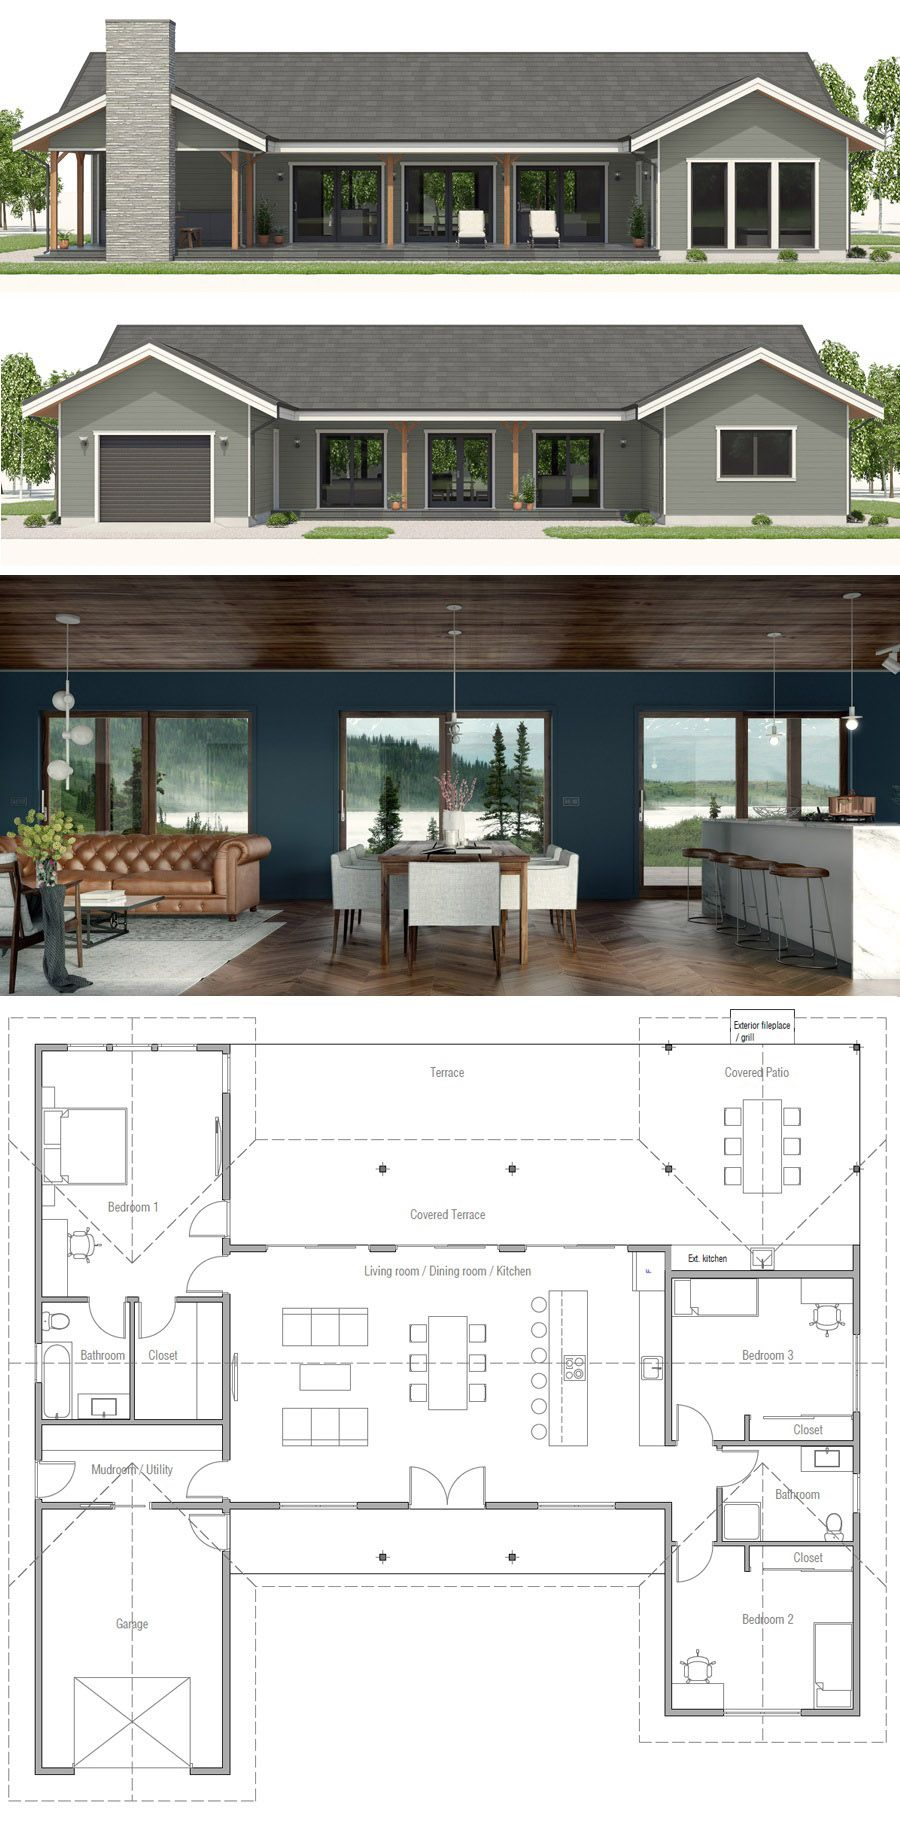 Home Homes Modern Farmhouse Modernfarmhouse New House Plans Small Home Plan Small House Floor Plans